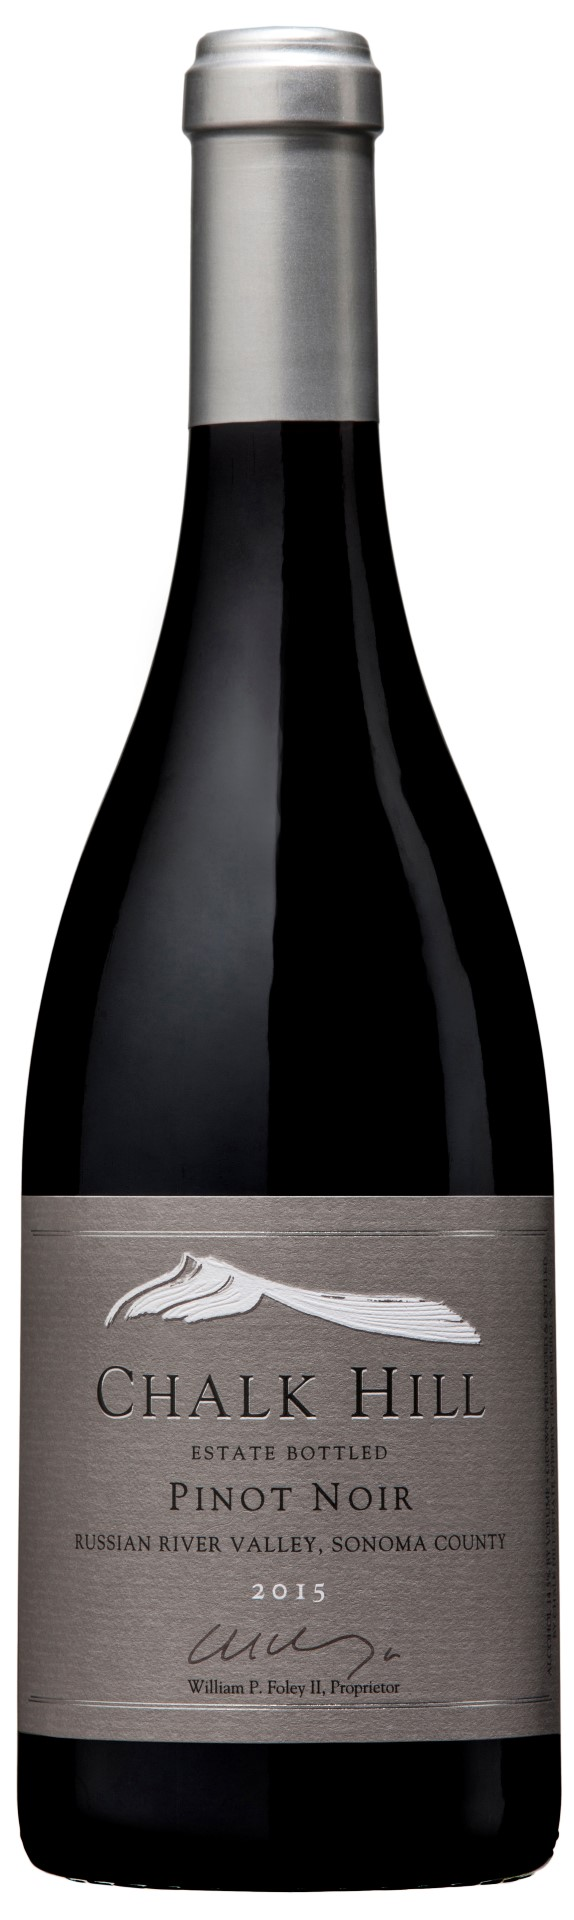 2015 Chalk Hill Pinot Noir Russian River Valley